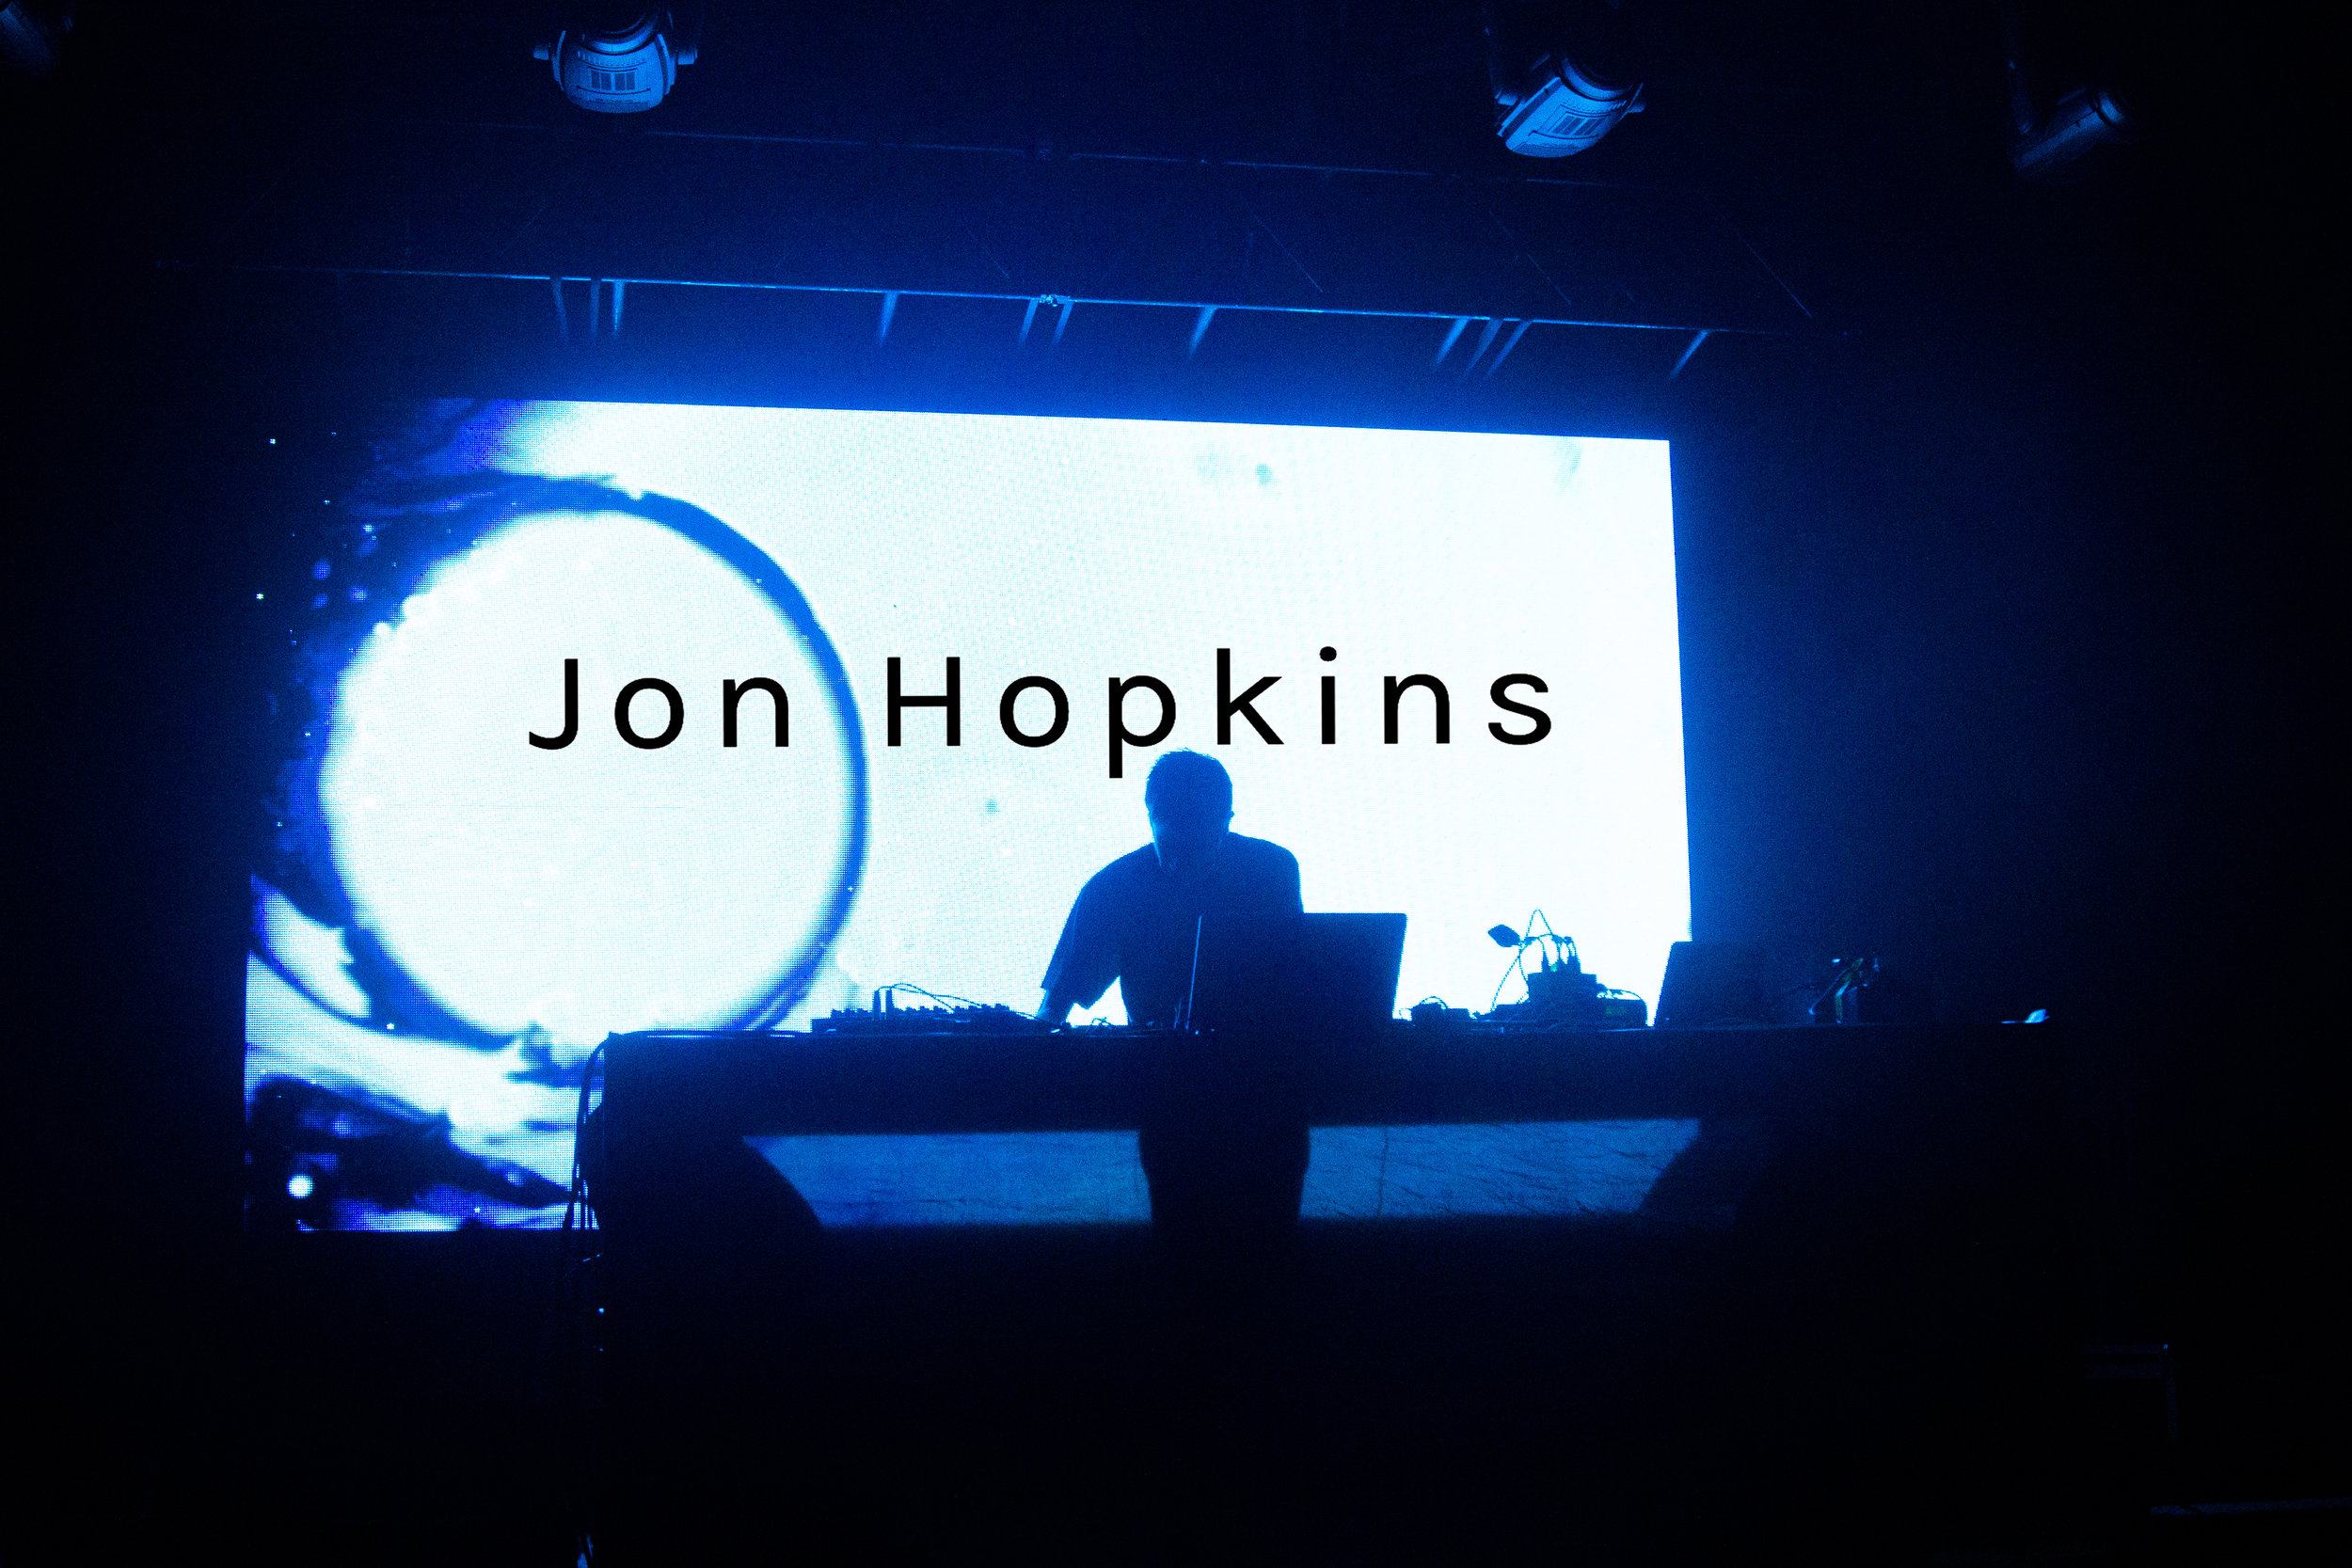 Jon-Hopkins-title.jpg